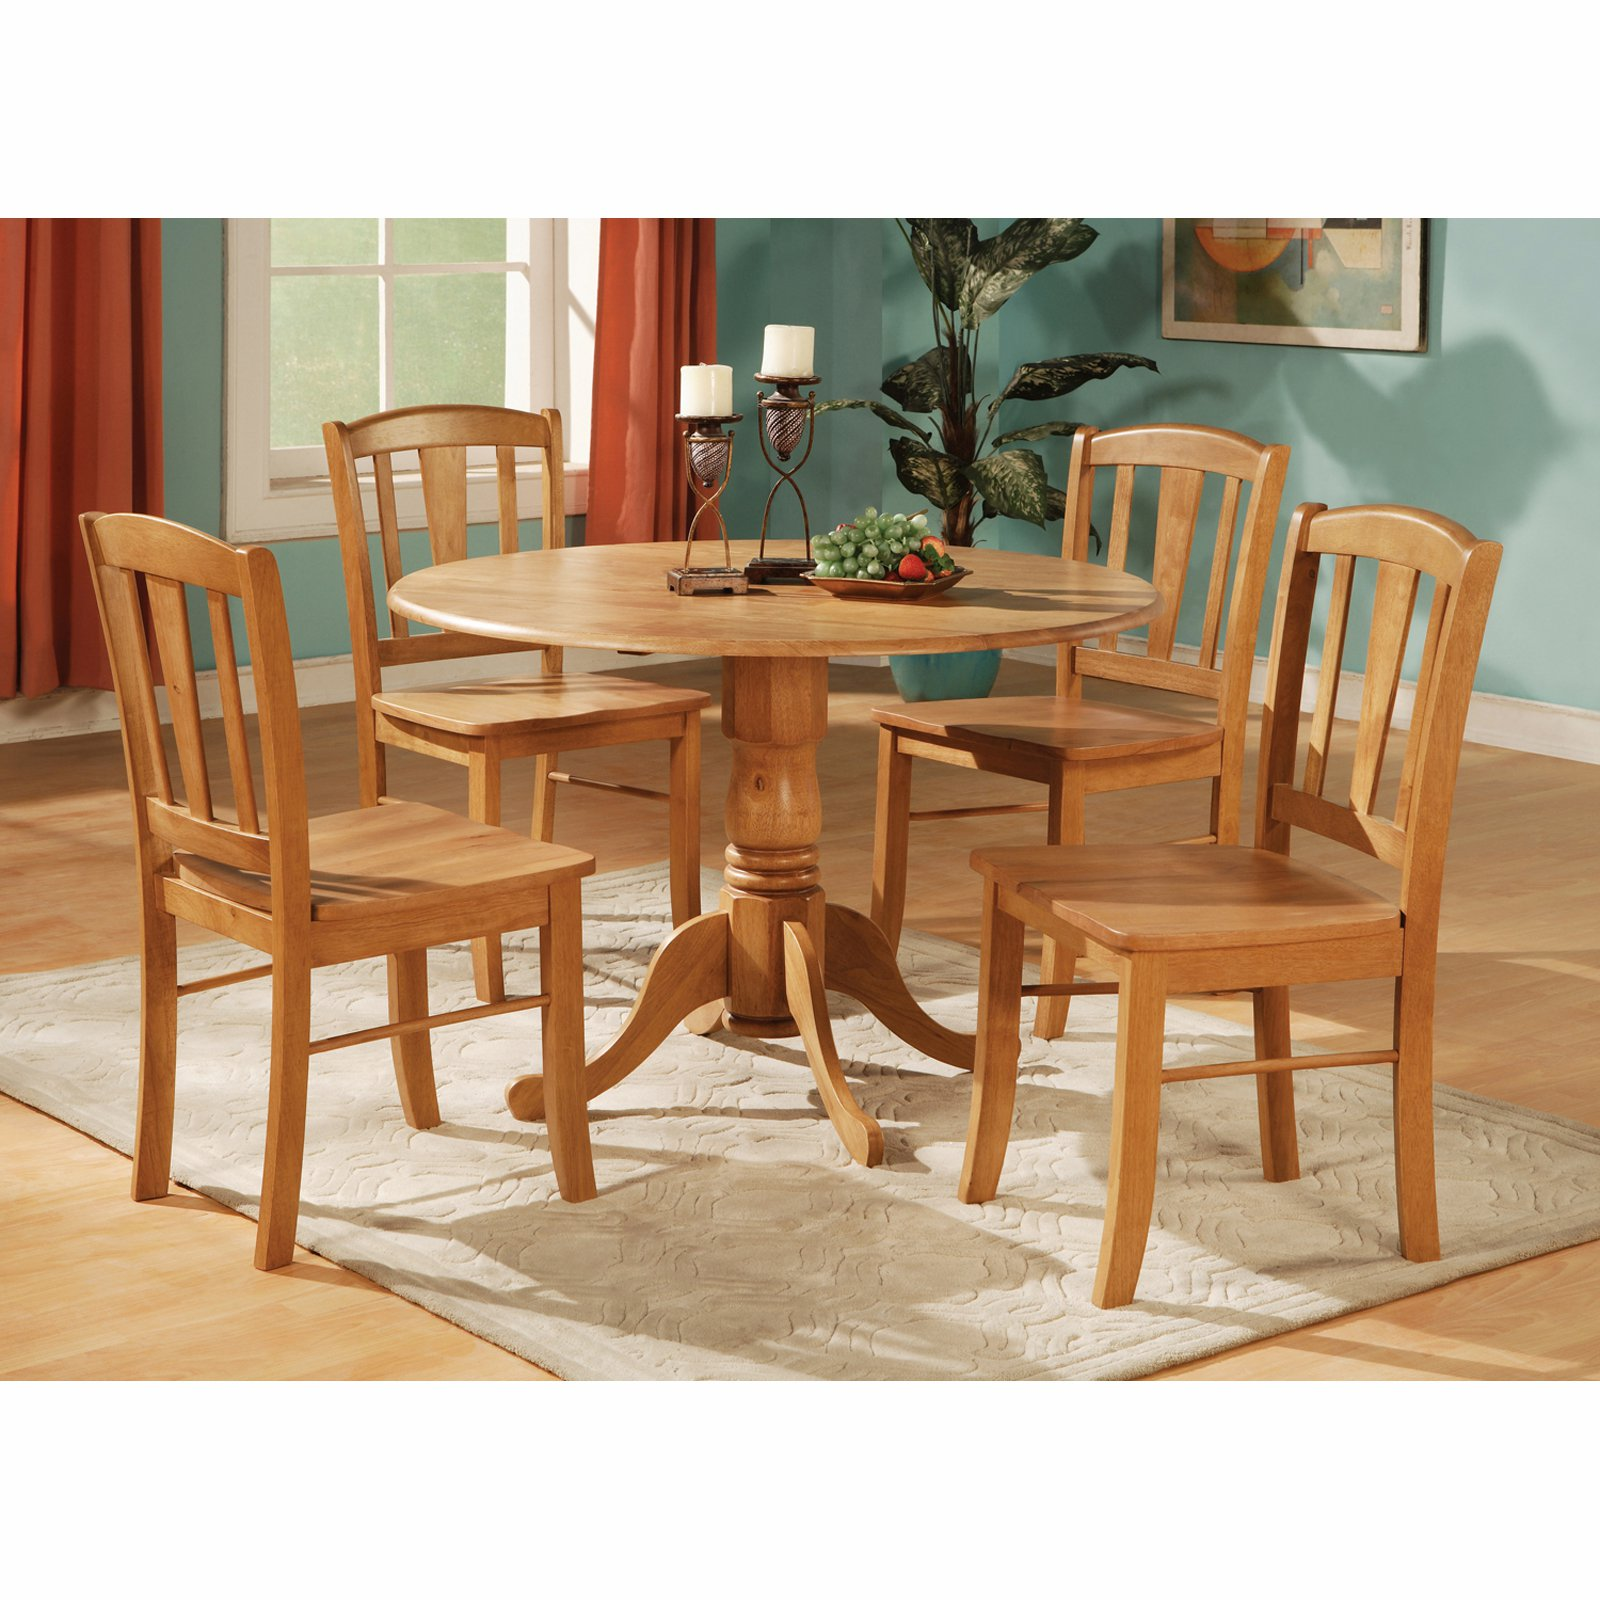 East West Furniture Dublin 5 Piece Drop Leaf Dining Table Set by East West Furniture